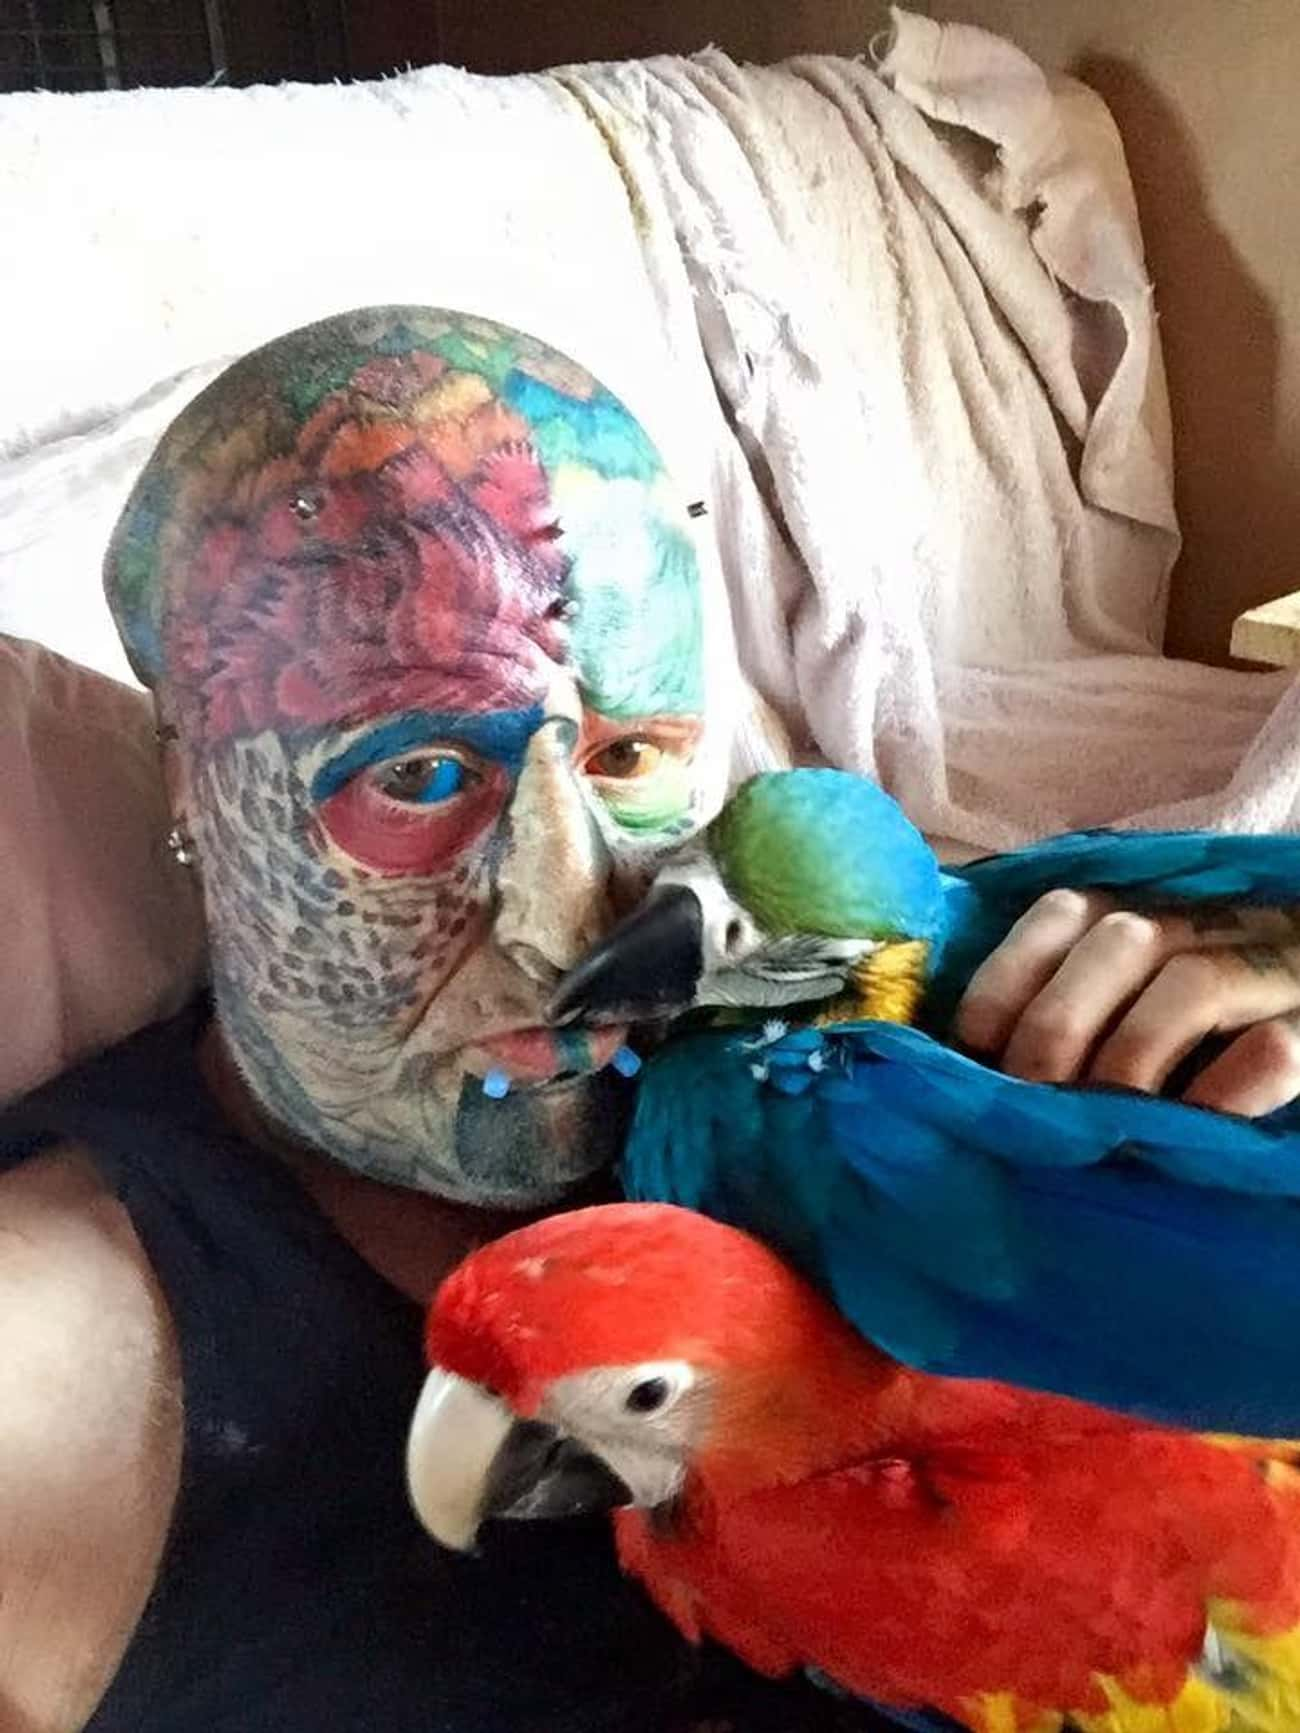 Ted Richards's Parrot Modifica is listed (or ranked) 4 on the list The Most Extreme Body Modifications Ever